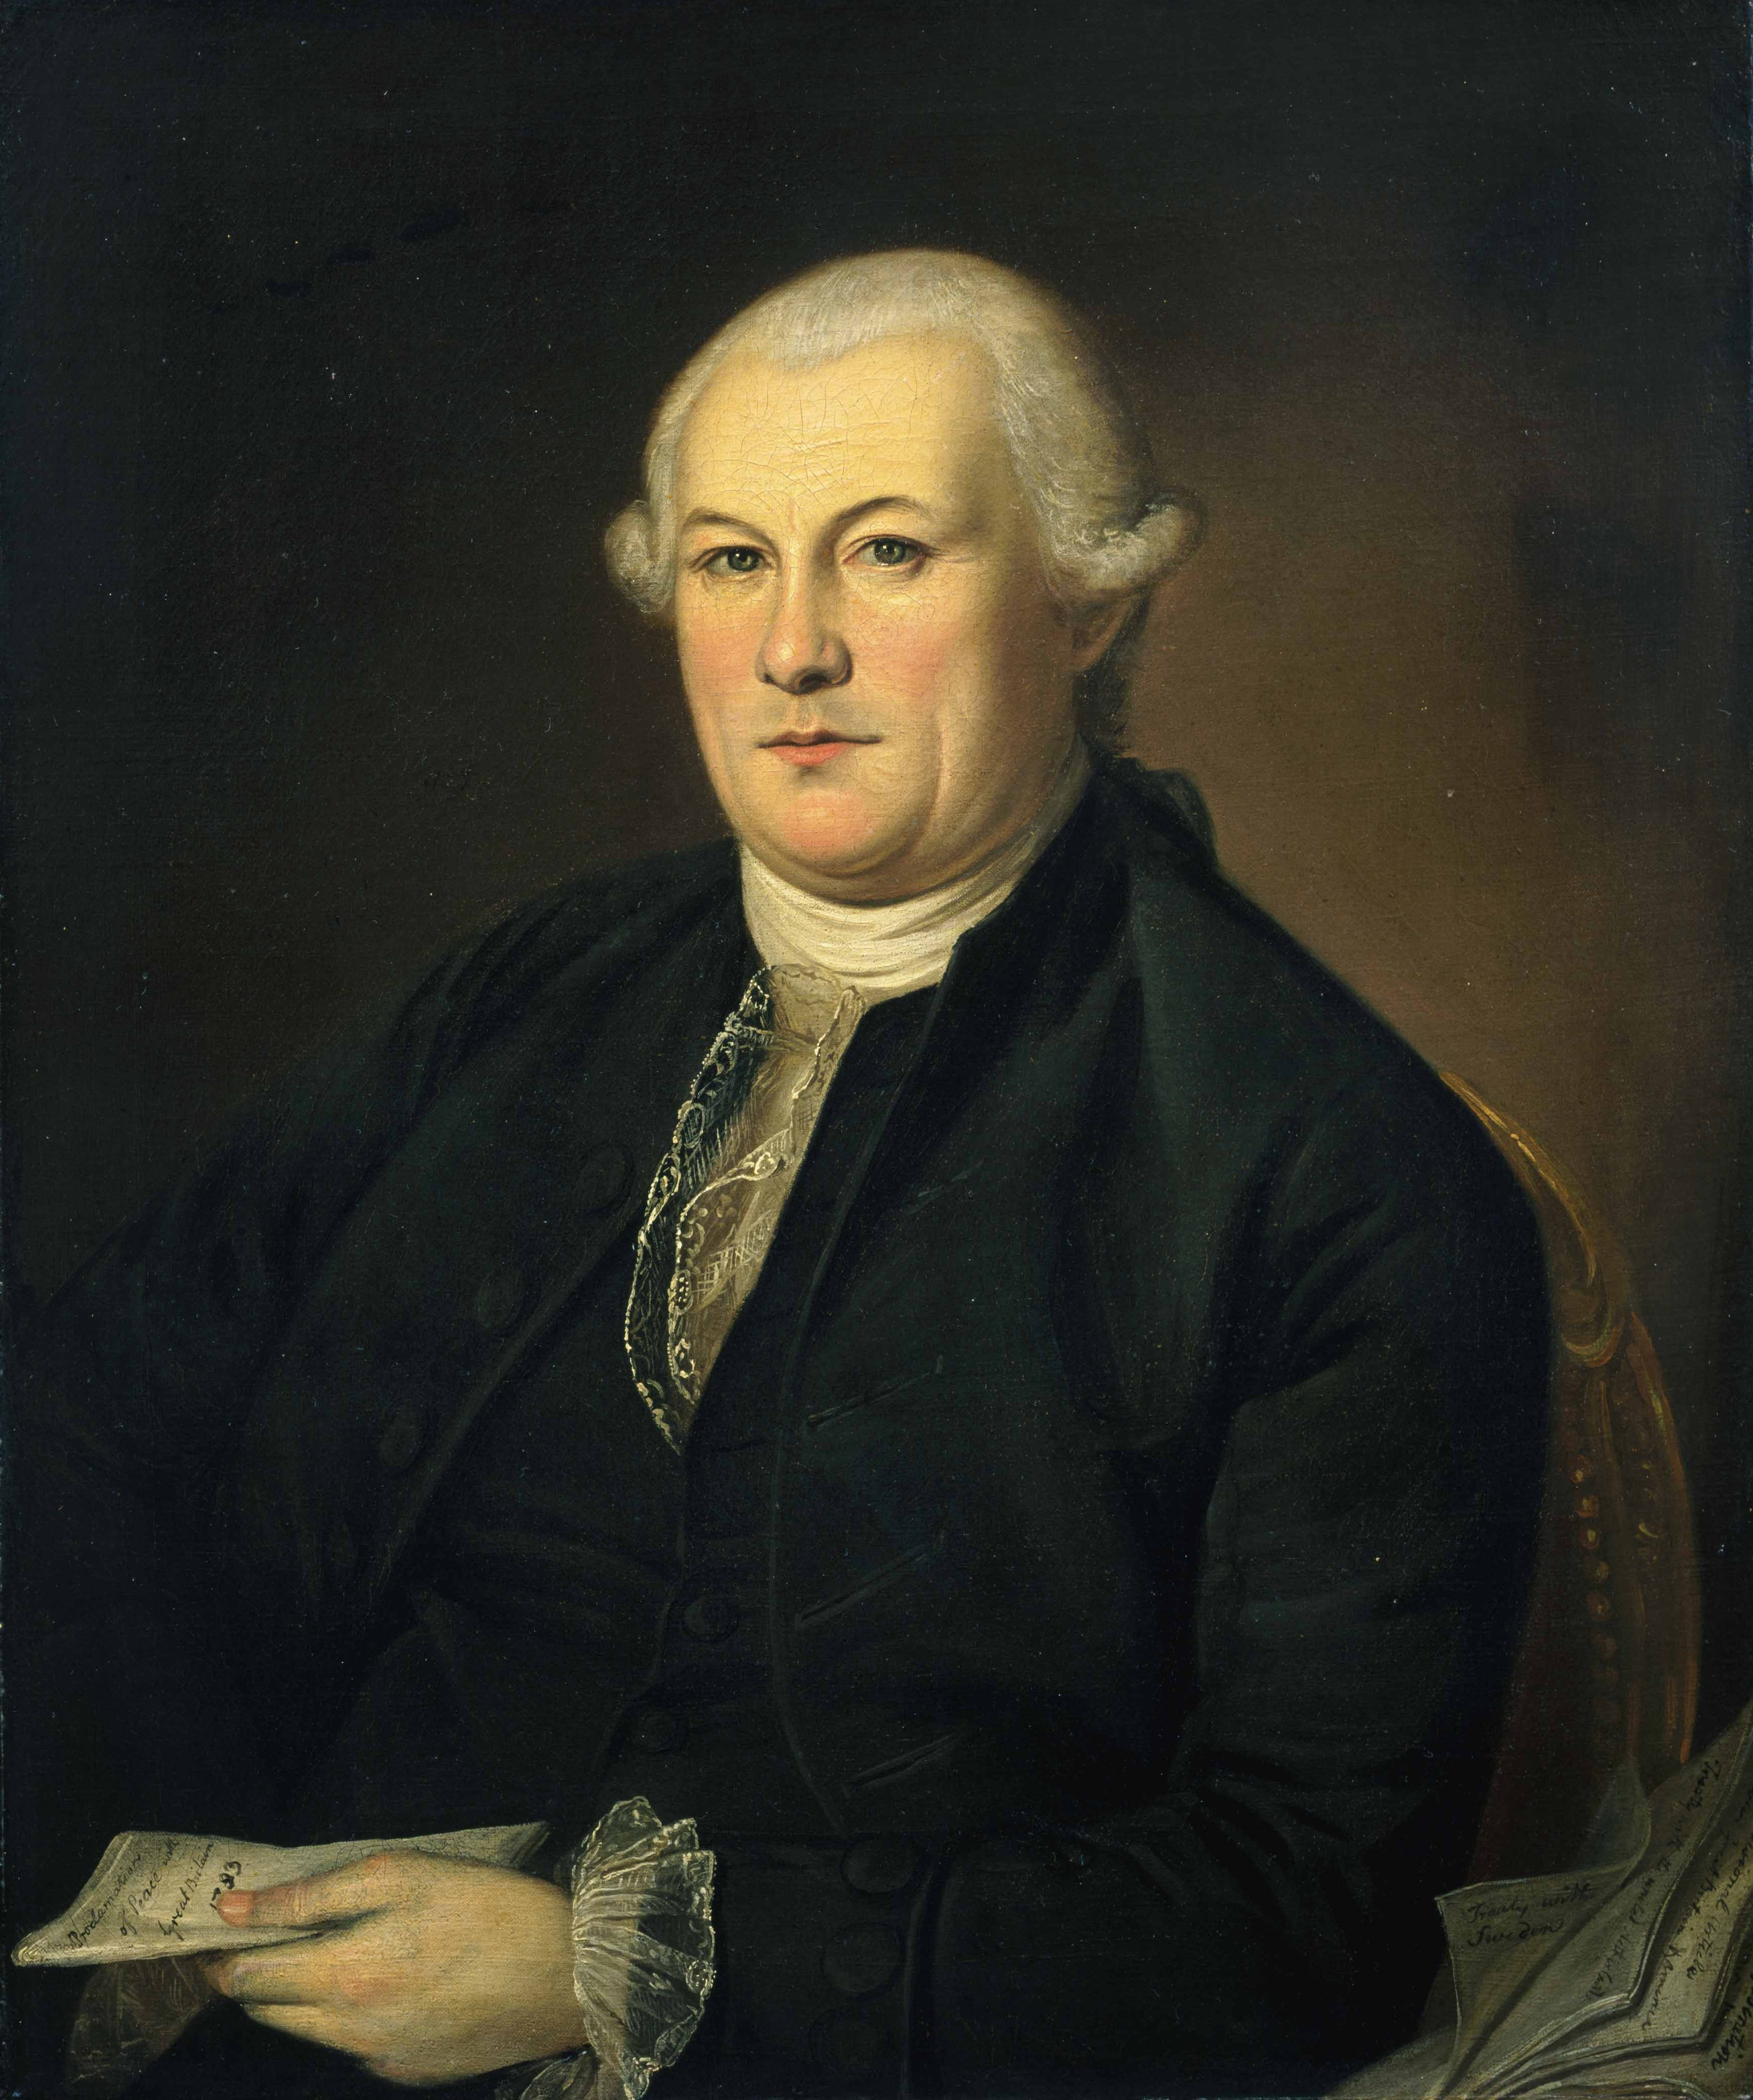 Portrait of Elias Boudinot by Charles Willson Peale.